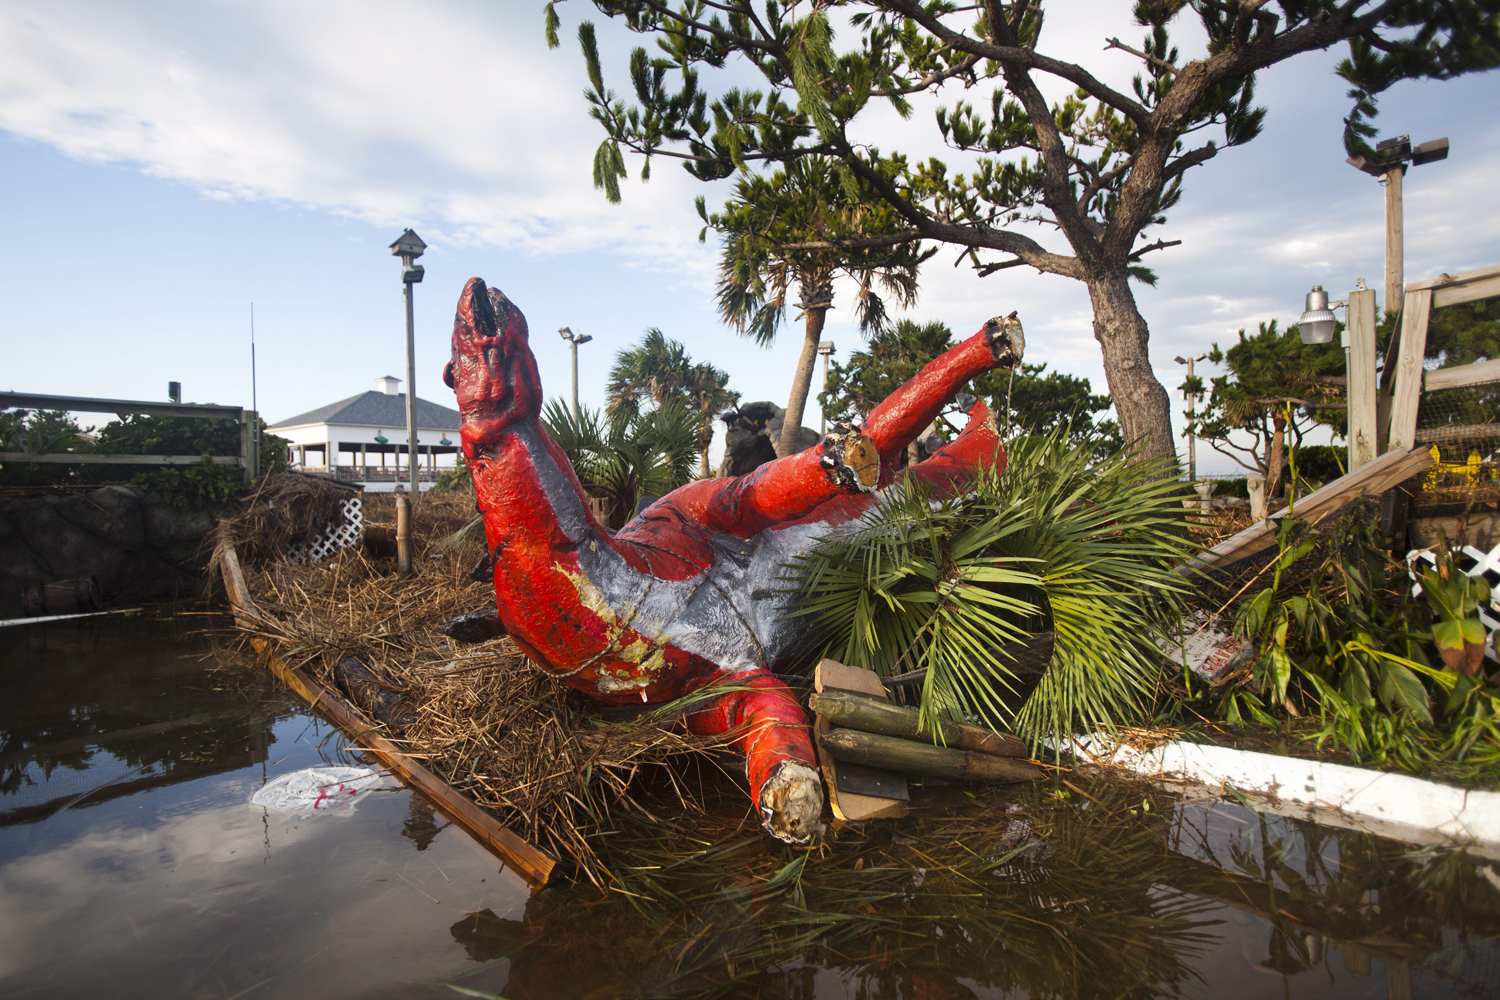 August 28, 2011, Nags Head, North Carolina. The morning after Hurricane Irene barreled through the Outer Banks, a statue of a dinosaur at Jurassic Putt Putt Golf remained toppled.